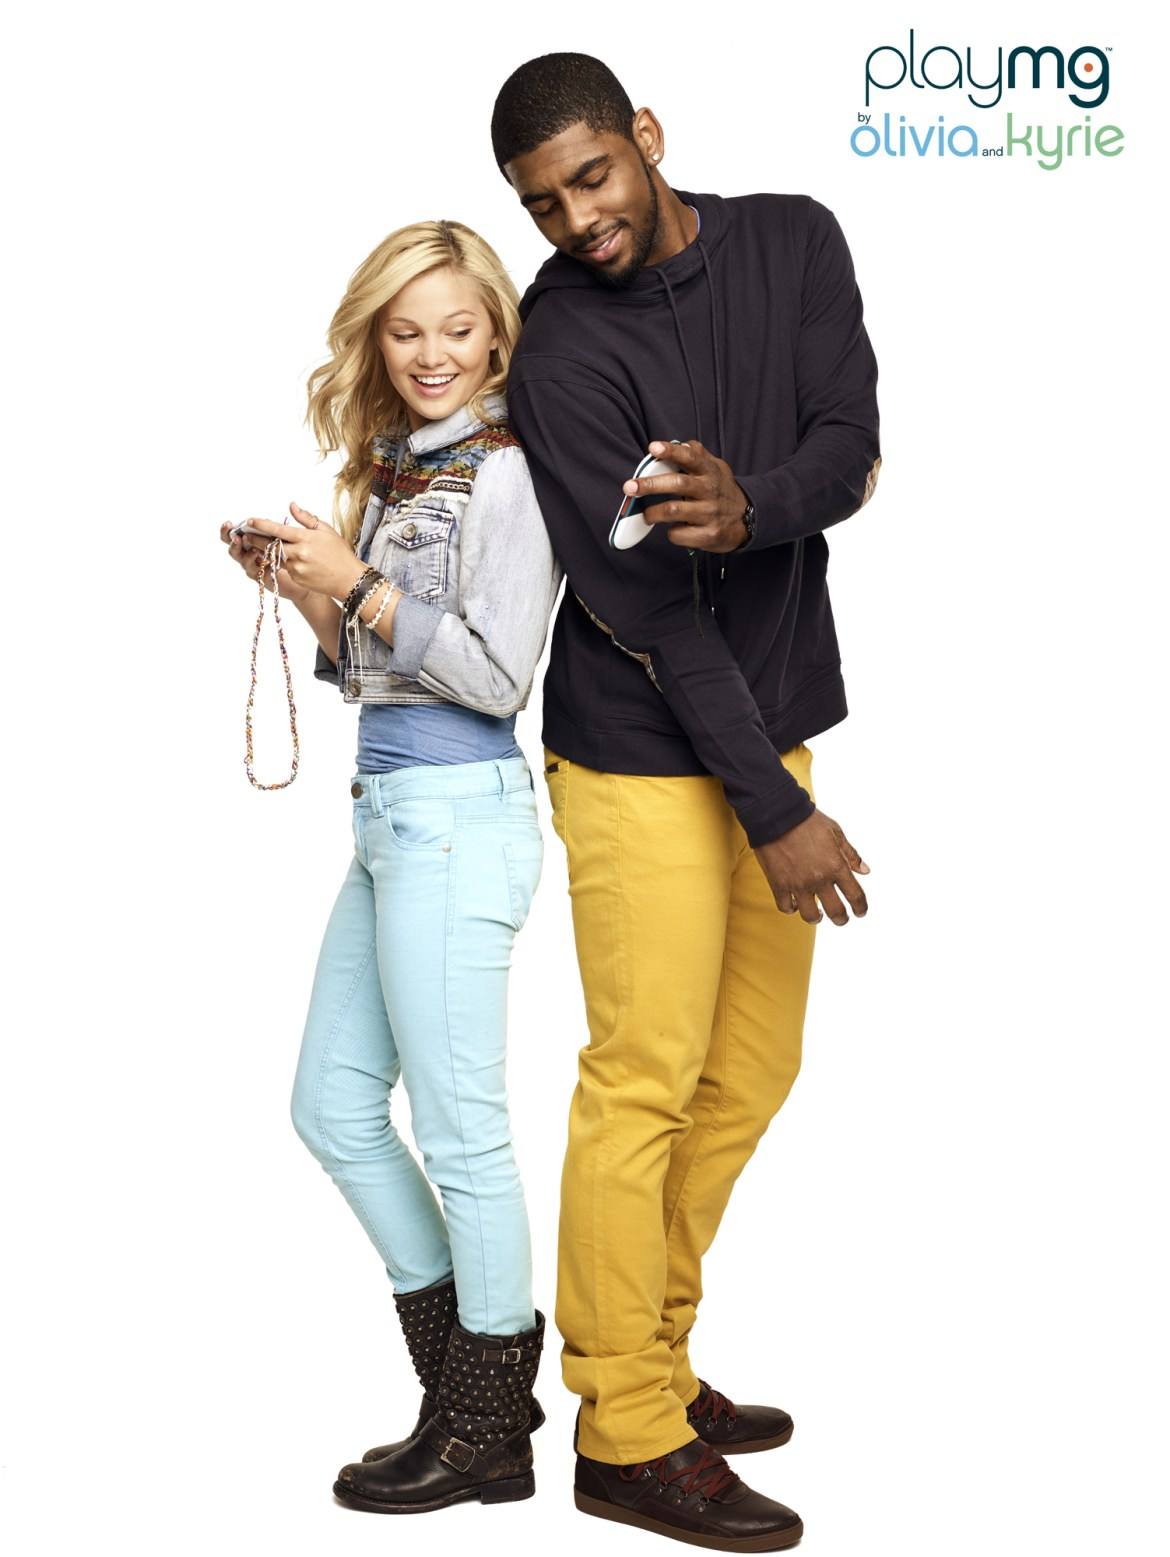 NBA Star Kyrie Irving and Disney actress Olivia Holt partner with PlayMG